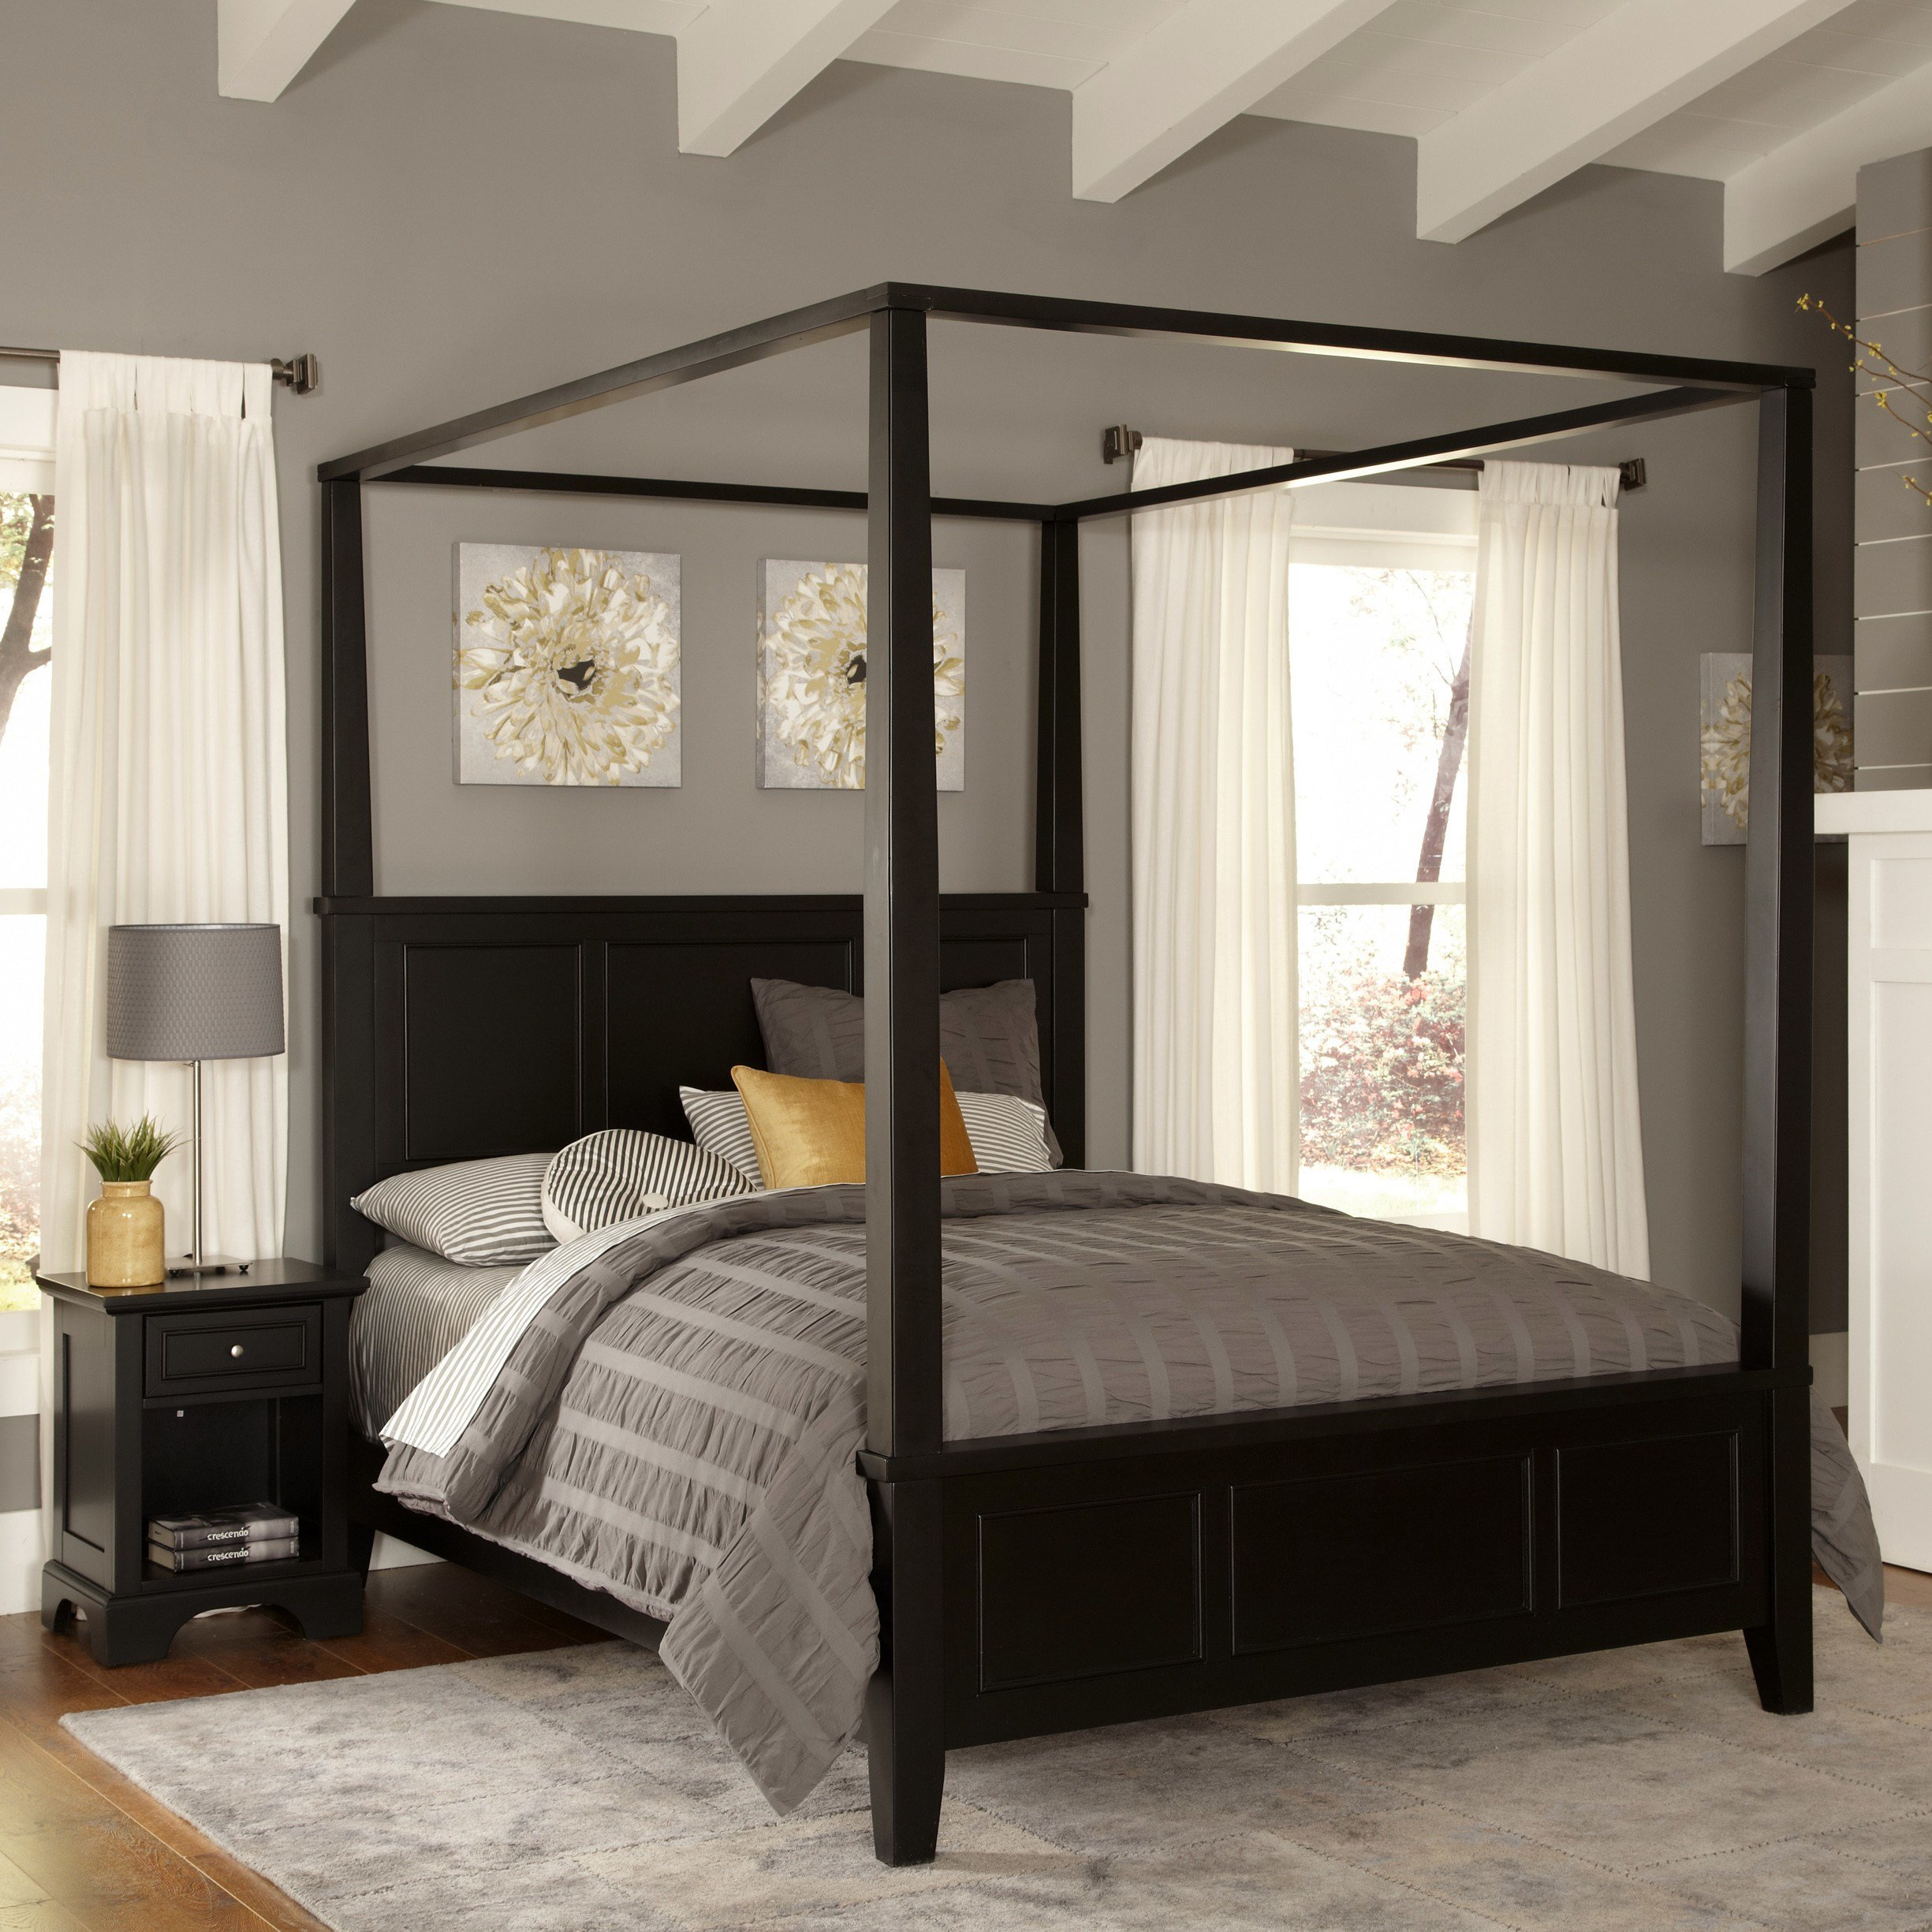 Best Home Styles Bedford Canopy 2 Piece Bedroom Set Reviews With Pictures